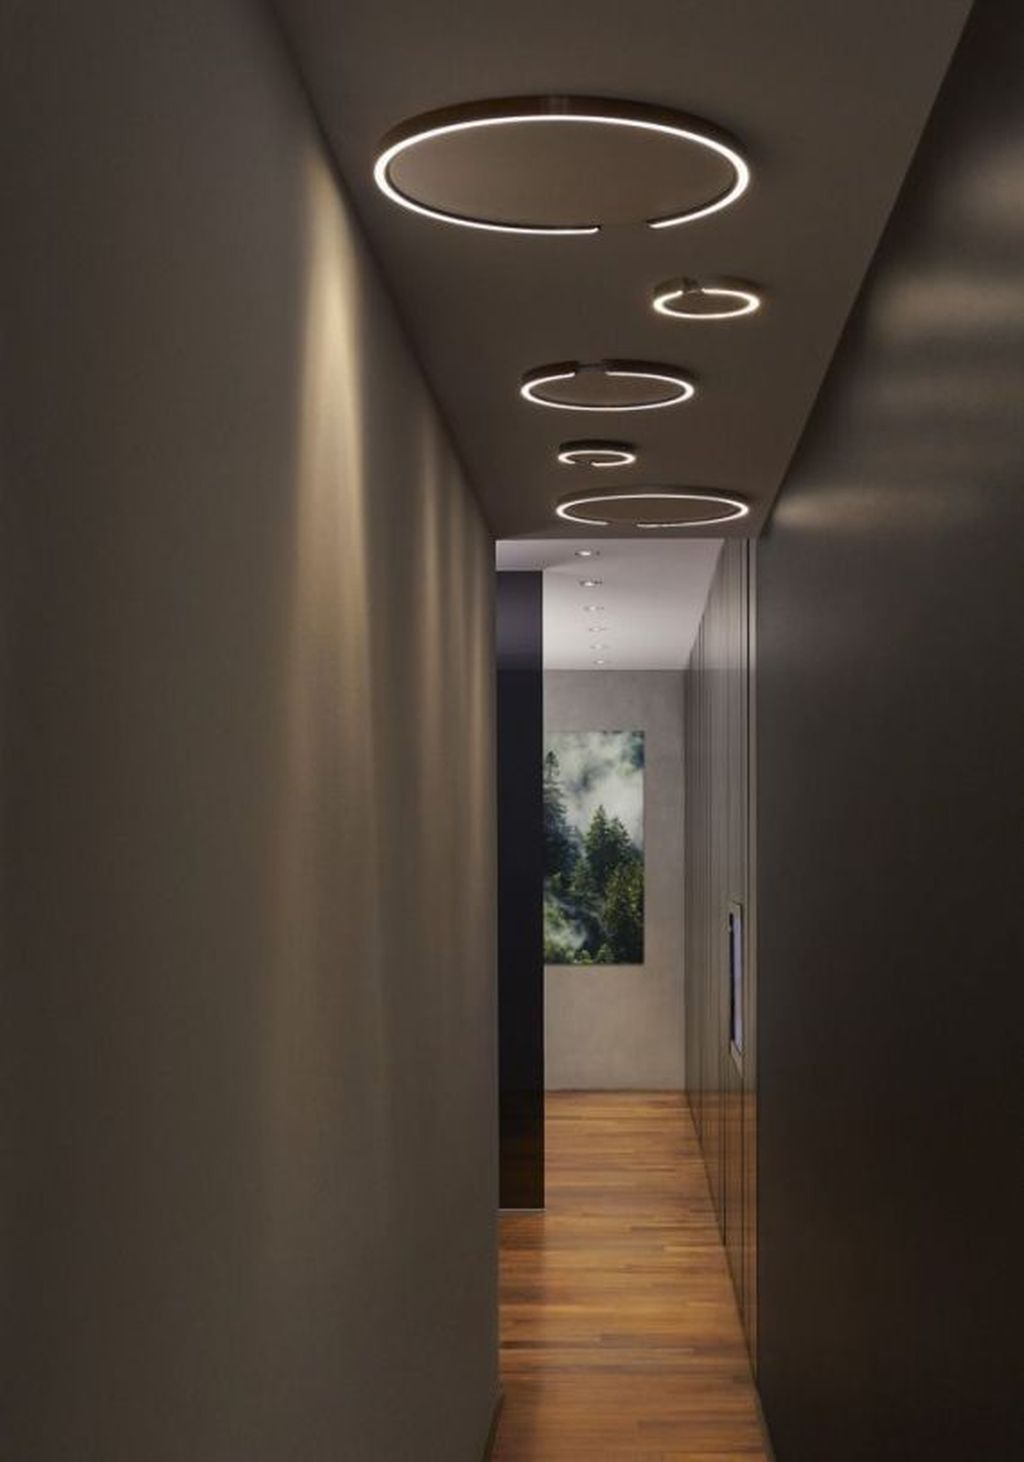 33 Casual Home Corridor Design Ideas For Your Home Inspiration In 2020